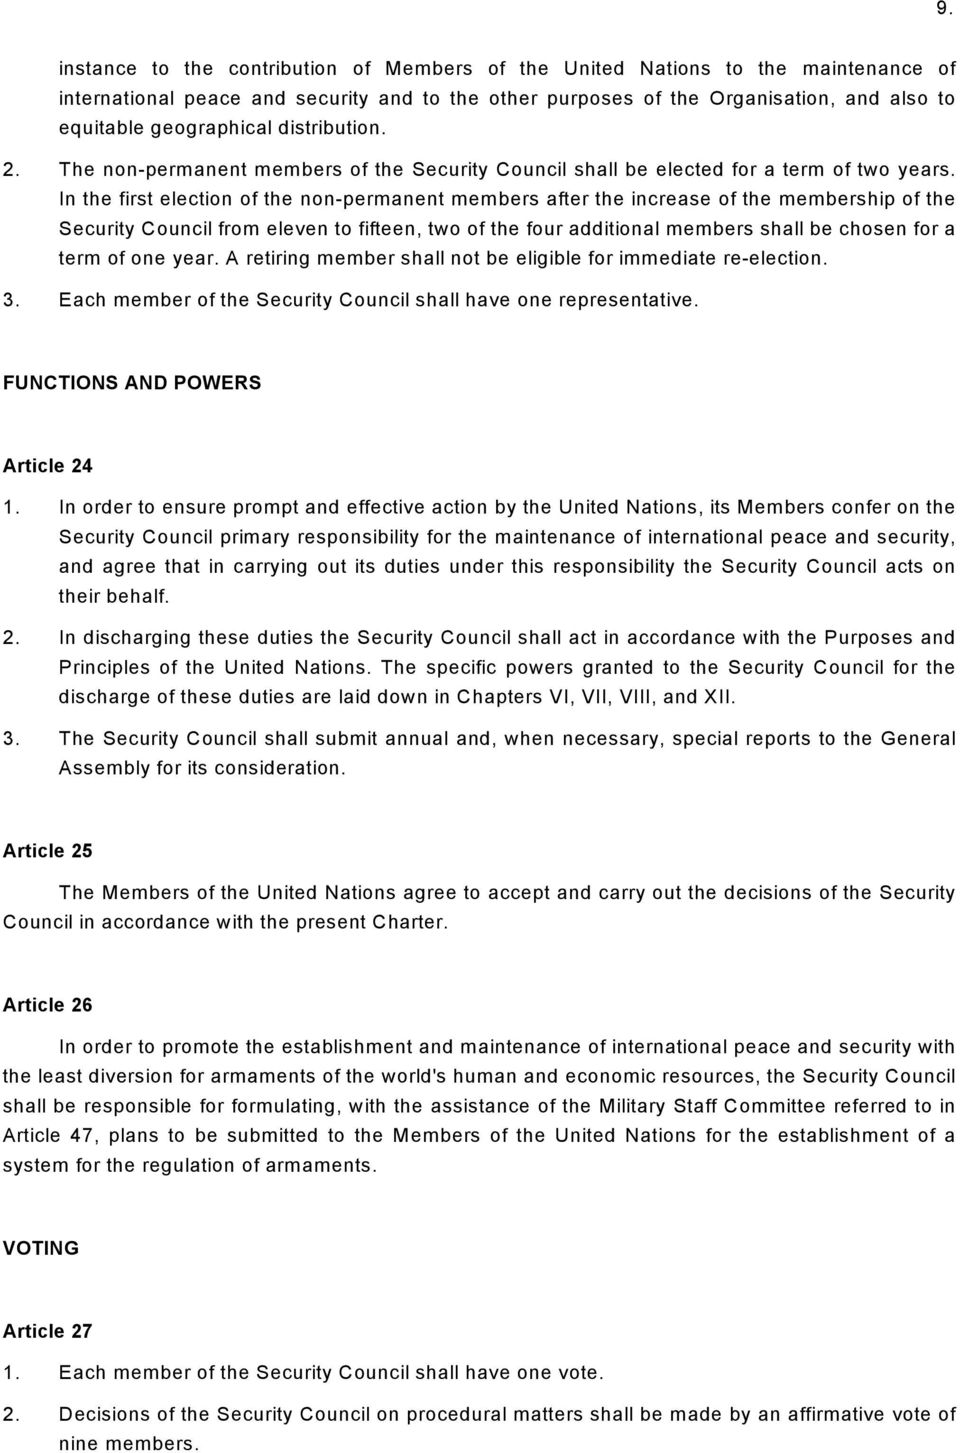 In the first election of the non-permanent members after the increase of the membership of the Security Council from eleven to fifteen, two of the four additional members shall be chosen for a term